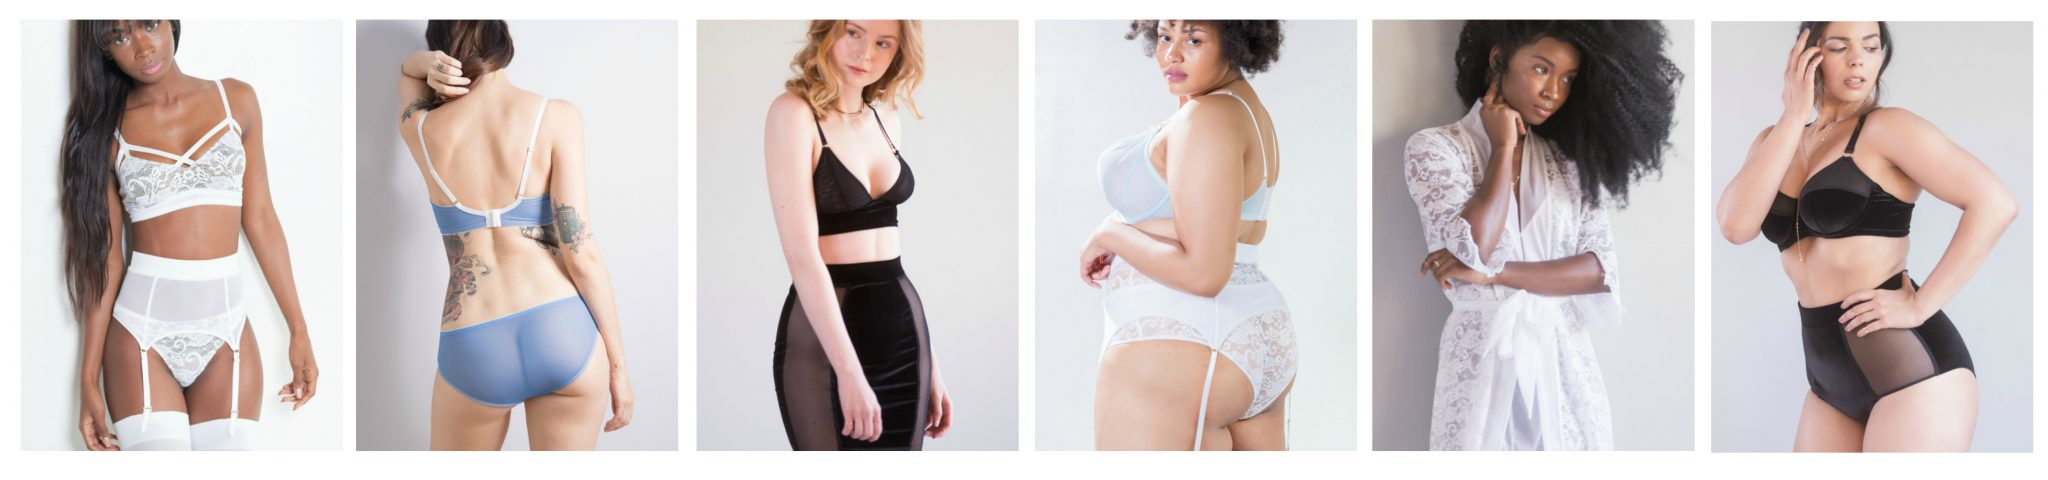 377142bd3eb33 Impish Lee offers every item seen in our store and customizer for wholesale.  In addition, we create custom lingerie patterns, as well as branded  intimates ...